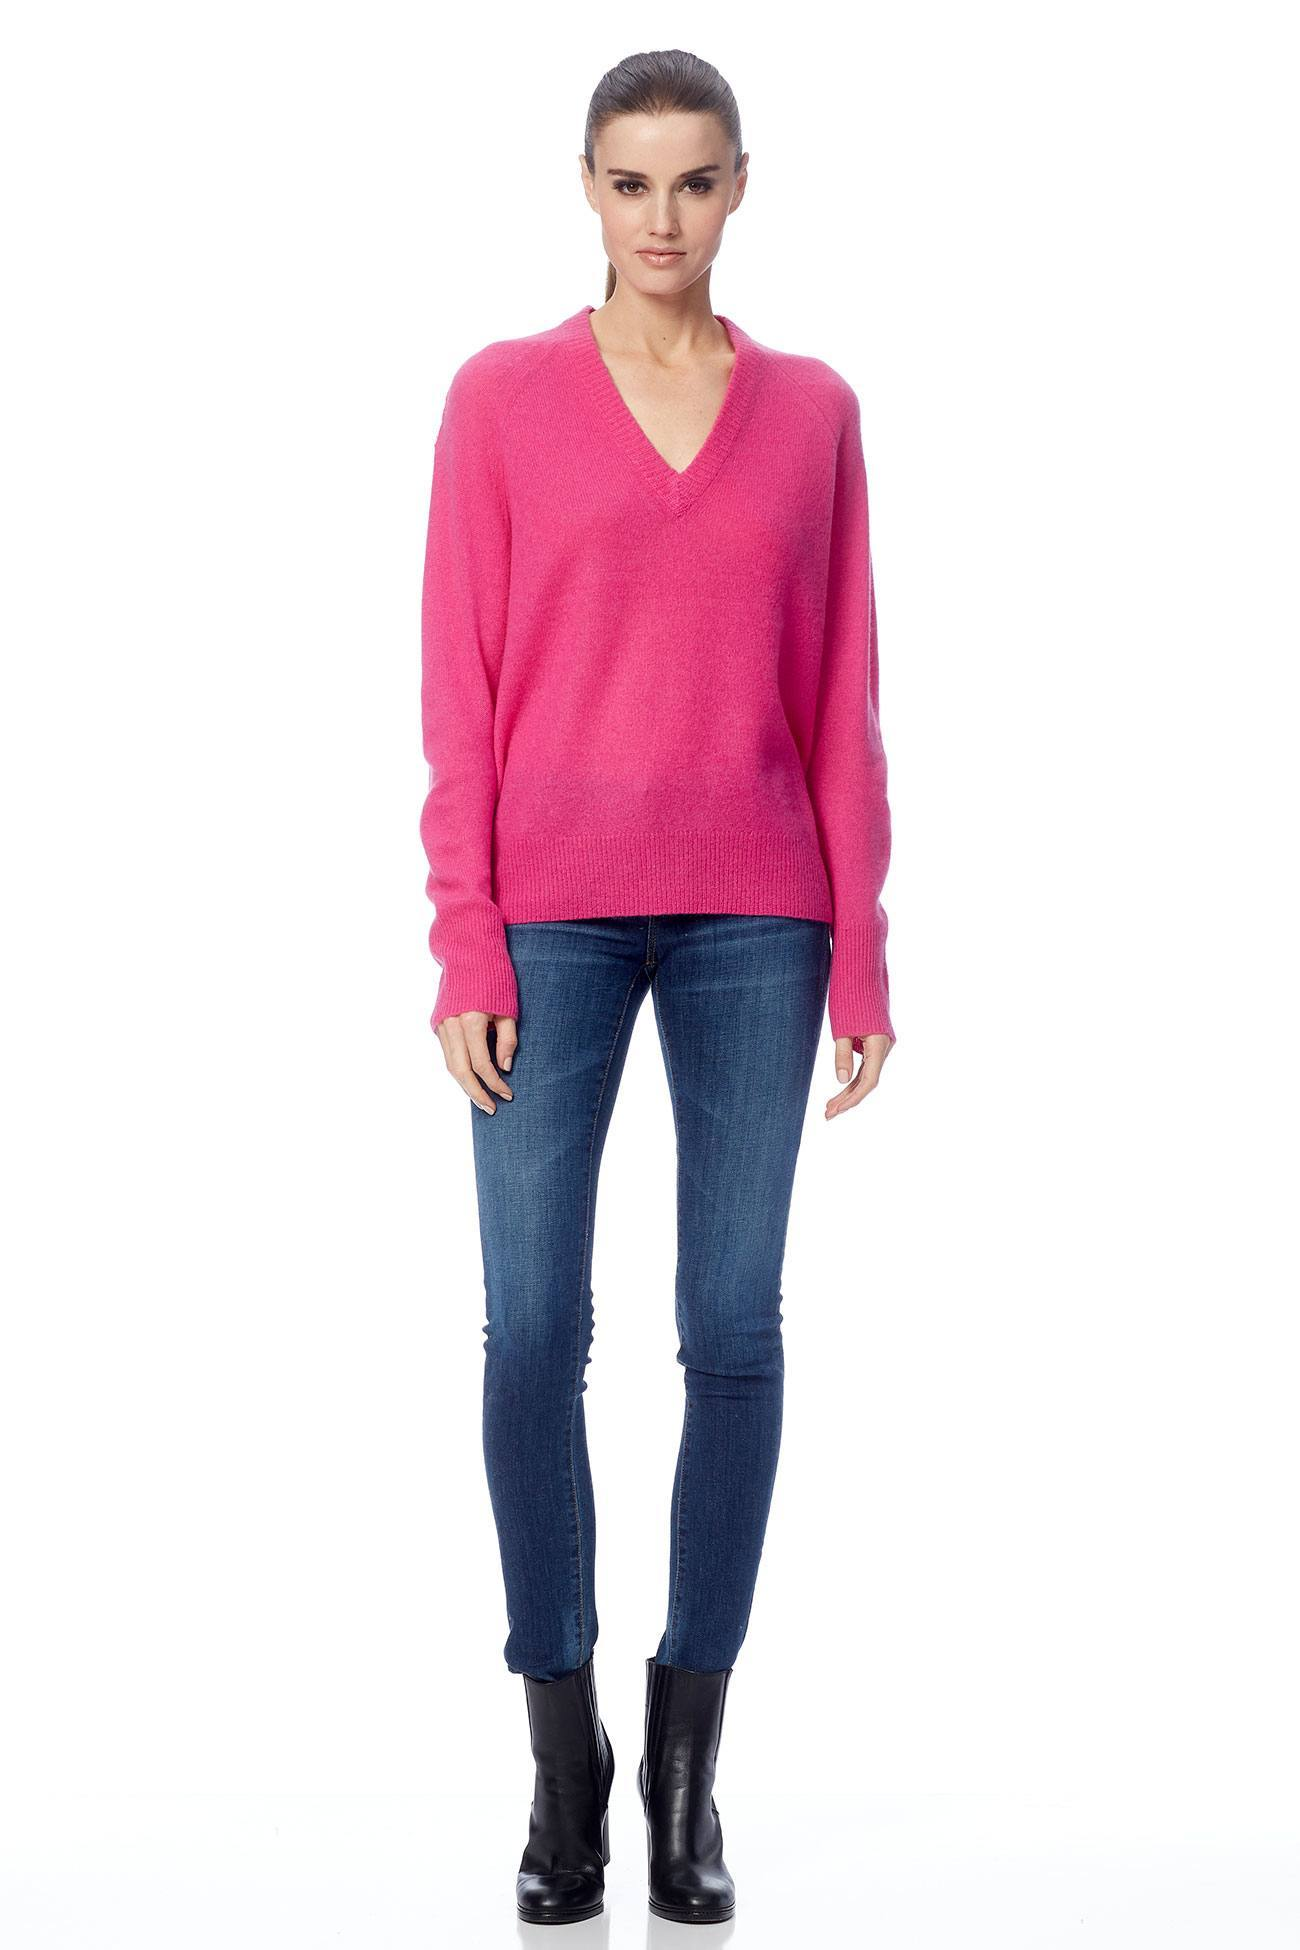 Callie V-Neck Sweater - Orchid